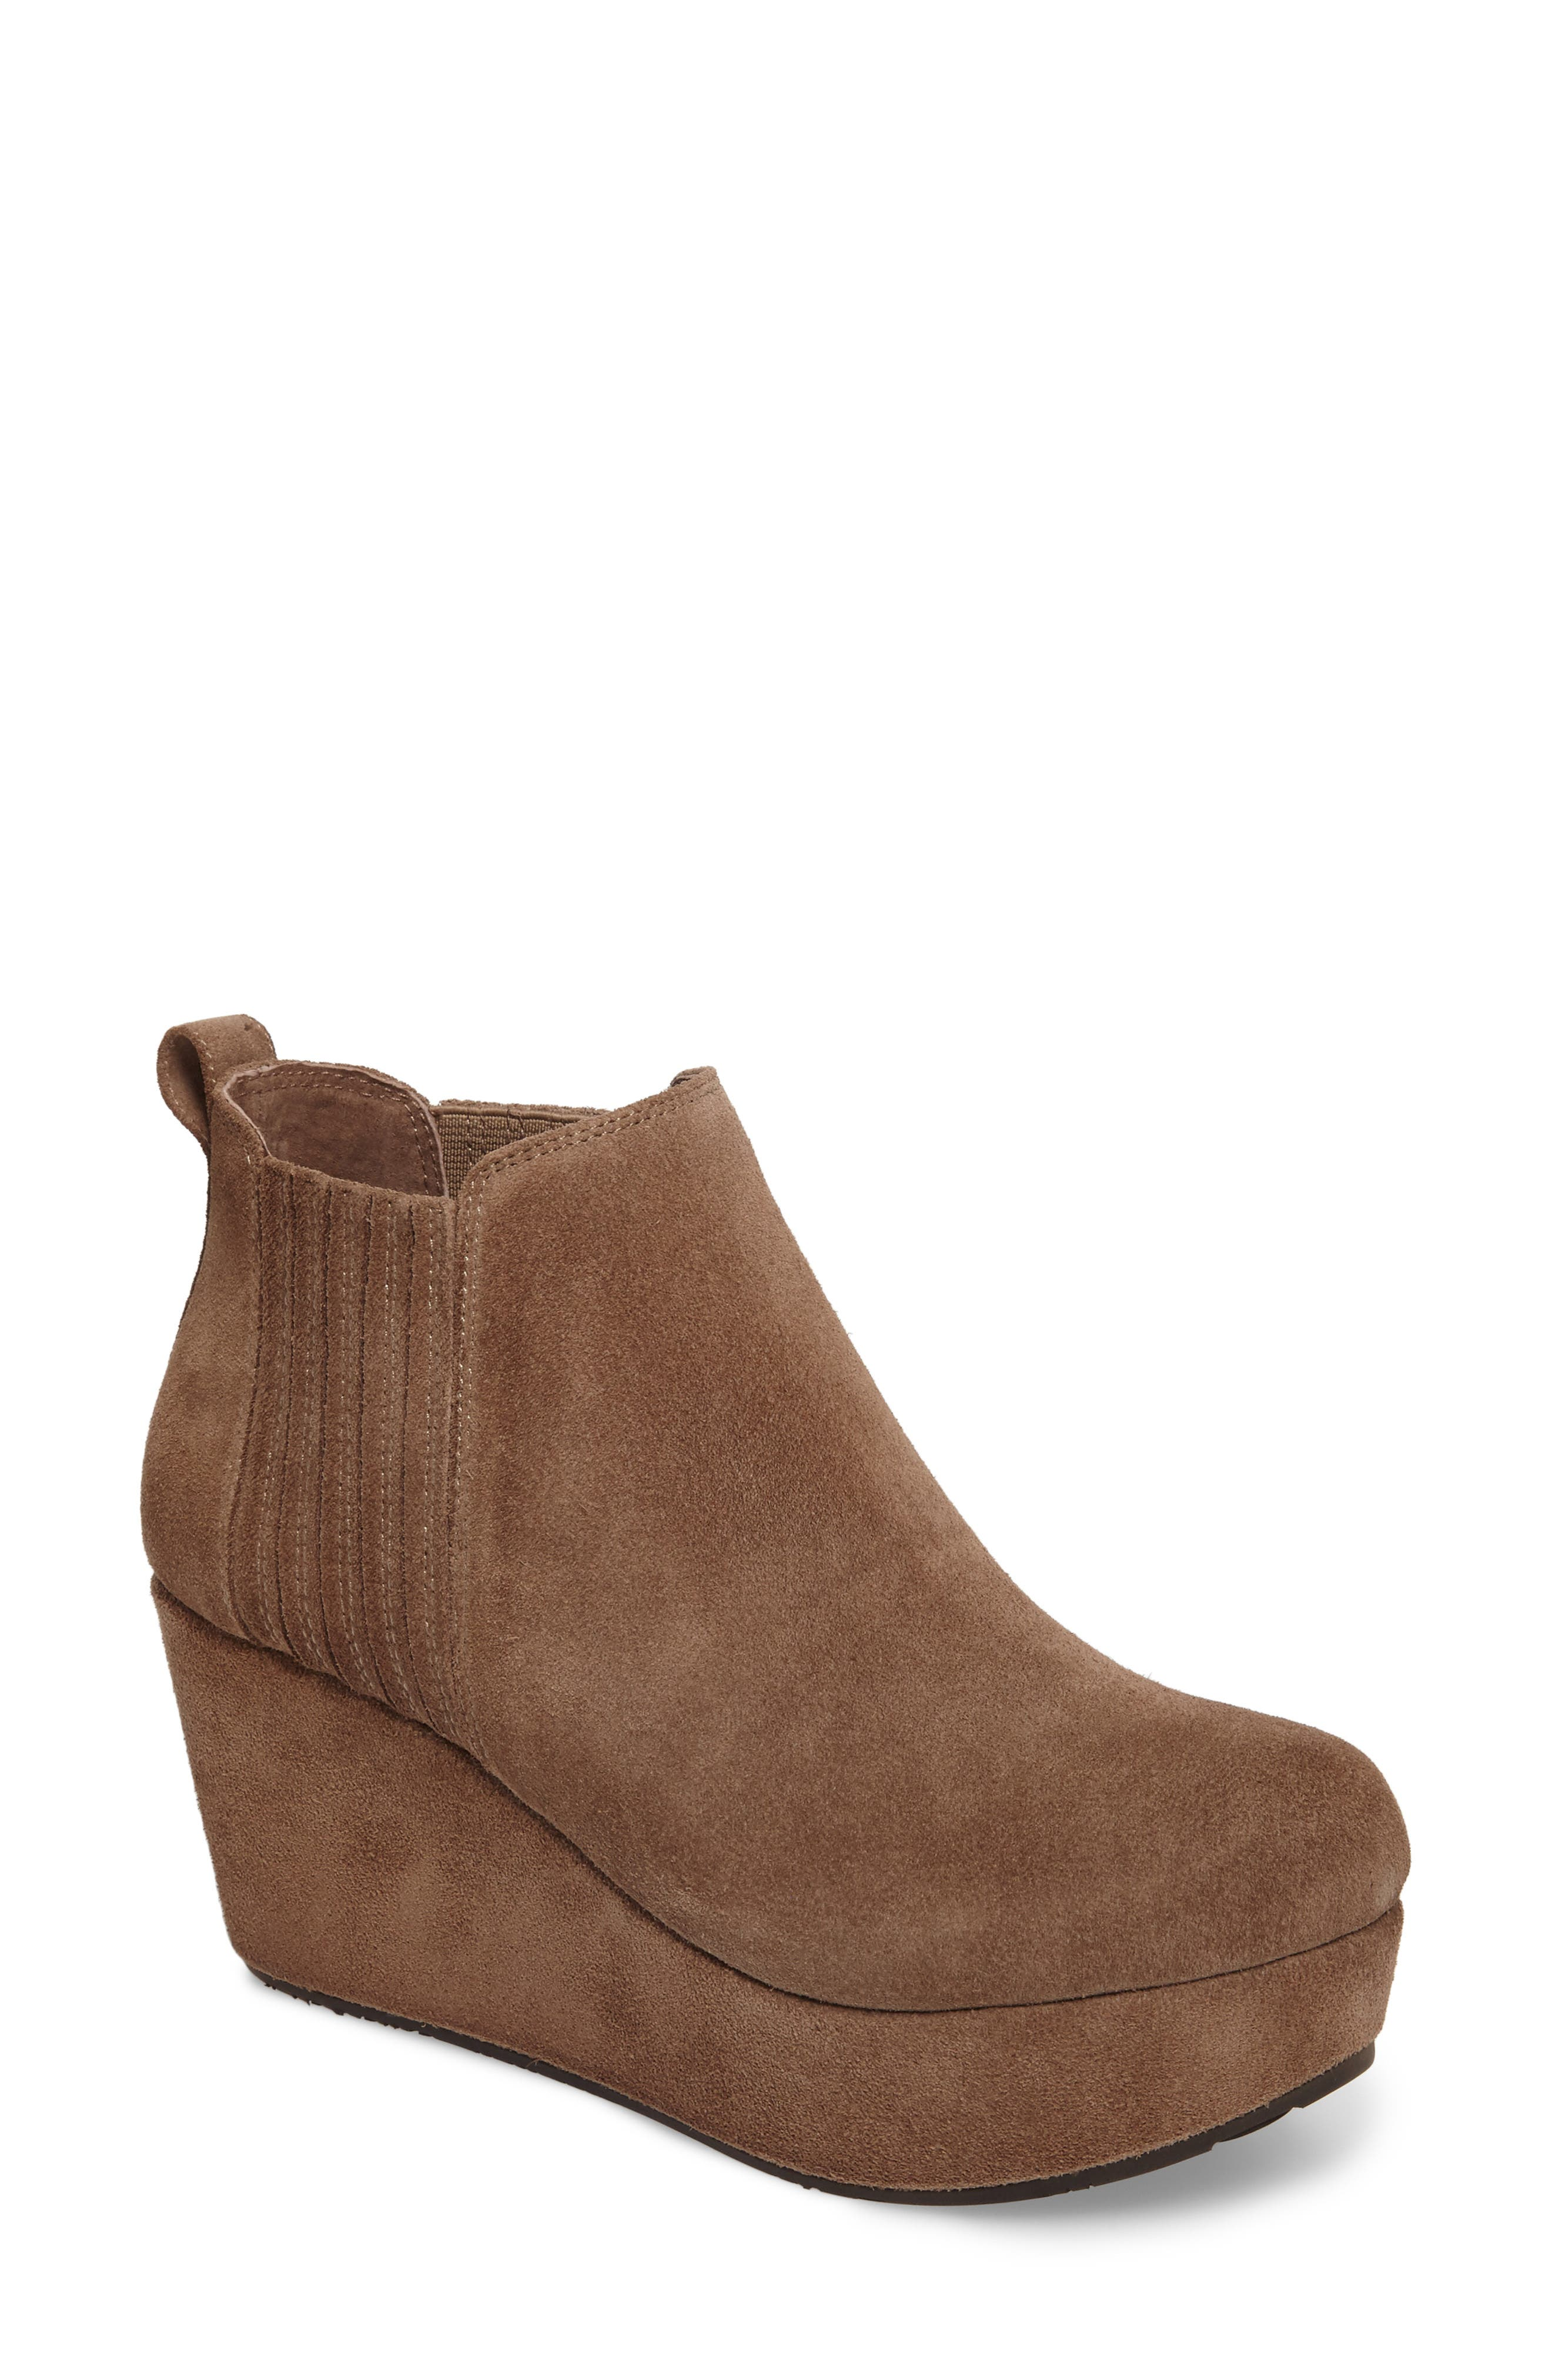 Walden Wedge Bootie,                             Main thumbnail 1, color,                             Taupe Suede